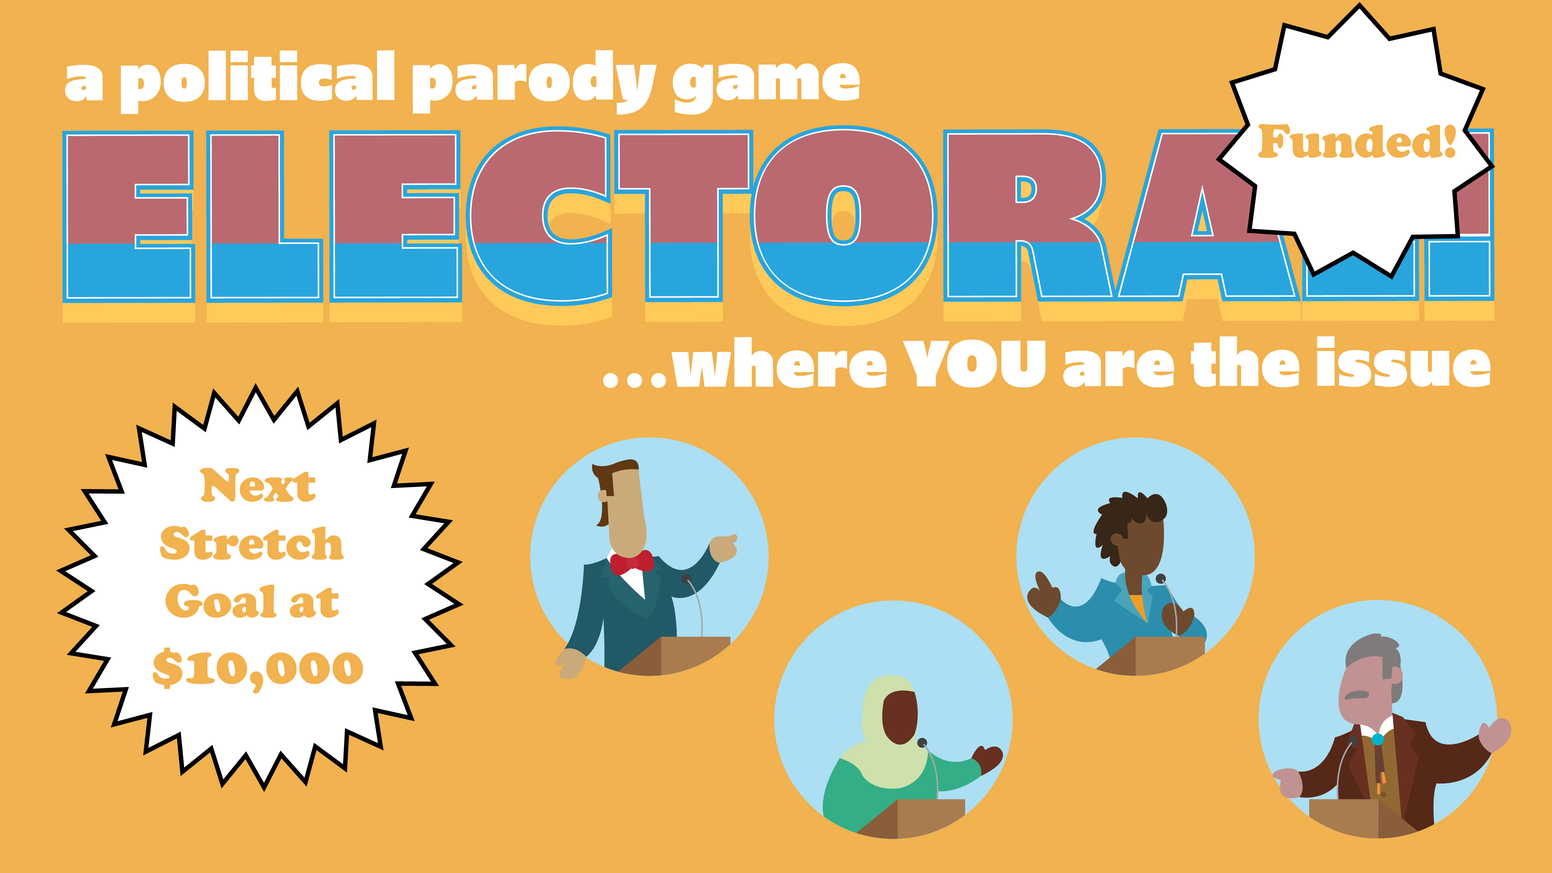 Identity politics for the politically exhausted. Electoral! is a good-natured, strategic and smart cultural parody that is equally perfect for boozy election night watch parties or random Thursday game night.